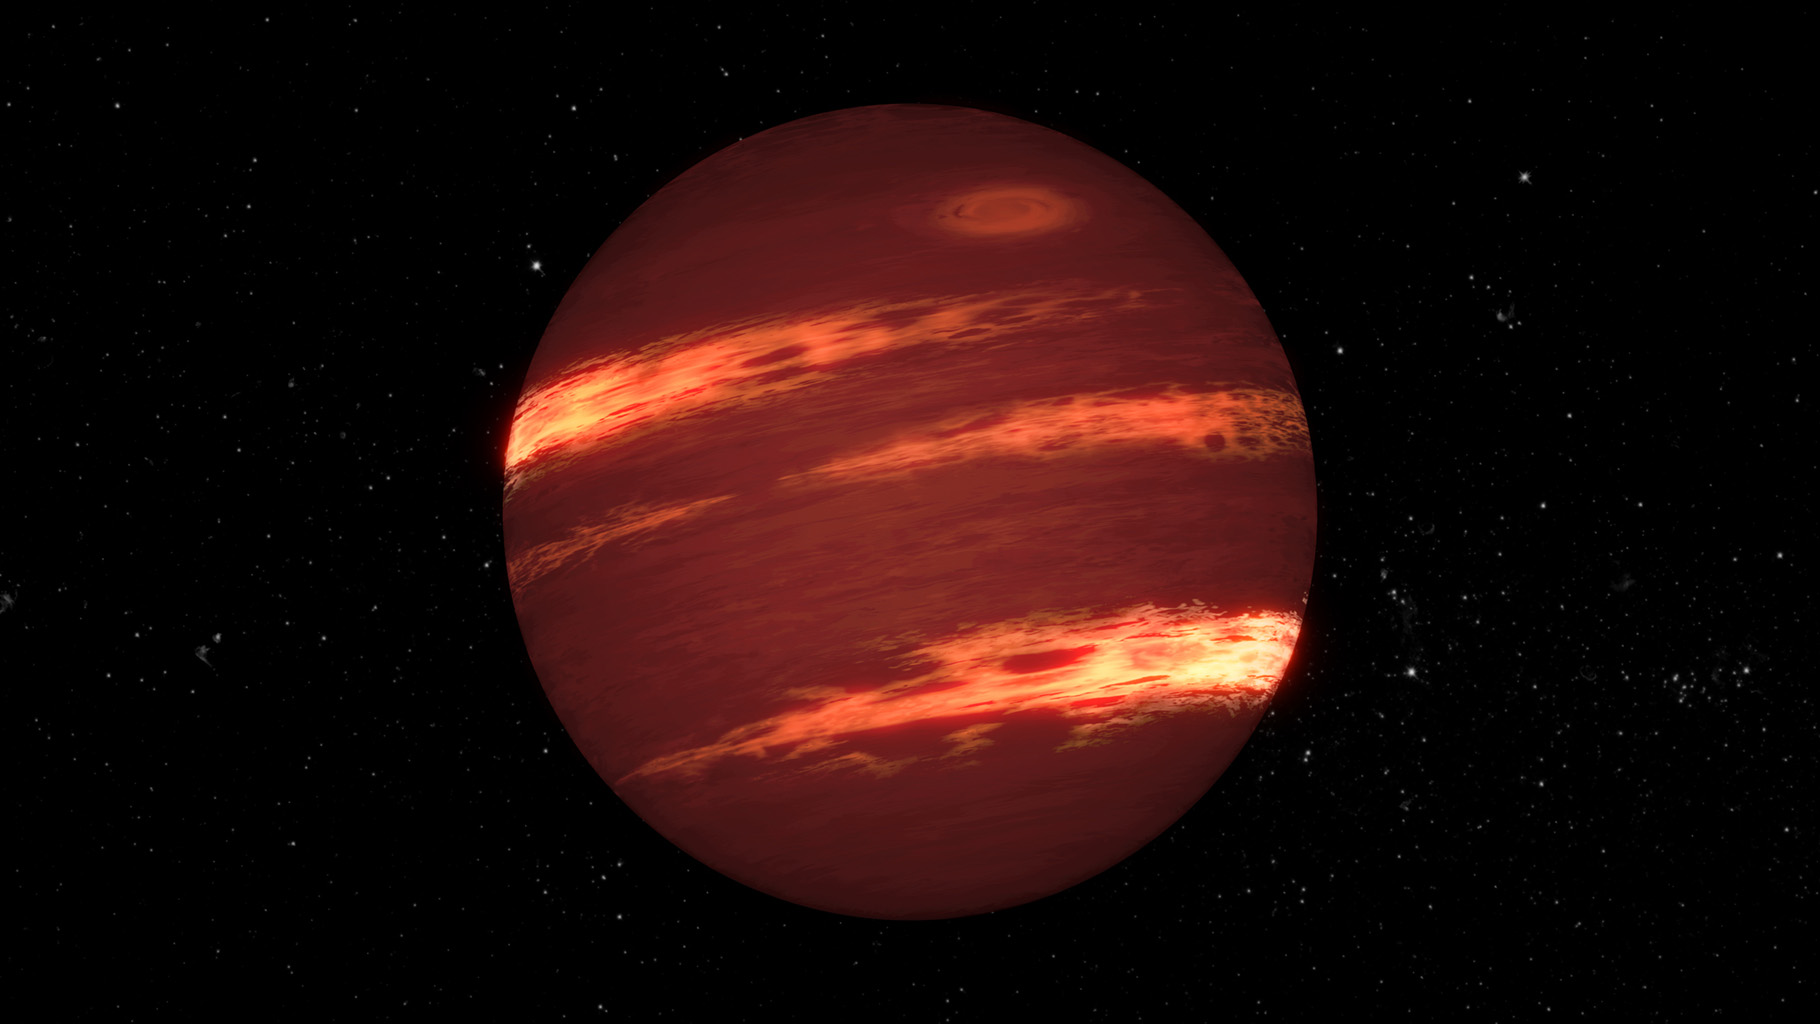 By using NASA's Spitzer Space Telescope, astronomers have found that the varying glow of brown dwarfs over time can be explained by bands of patchy clouds rotating at different speeds, as shown in this artist's concept.